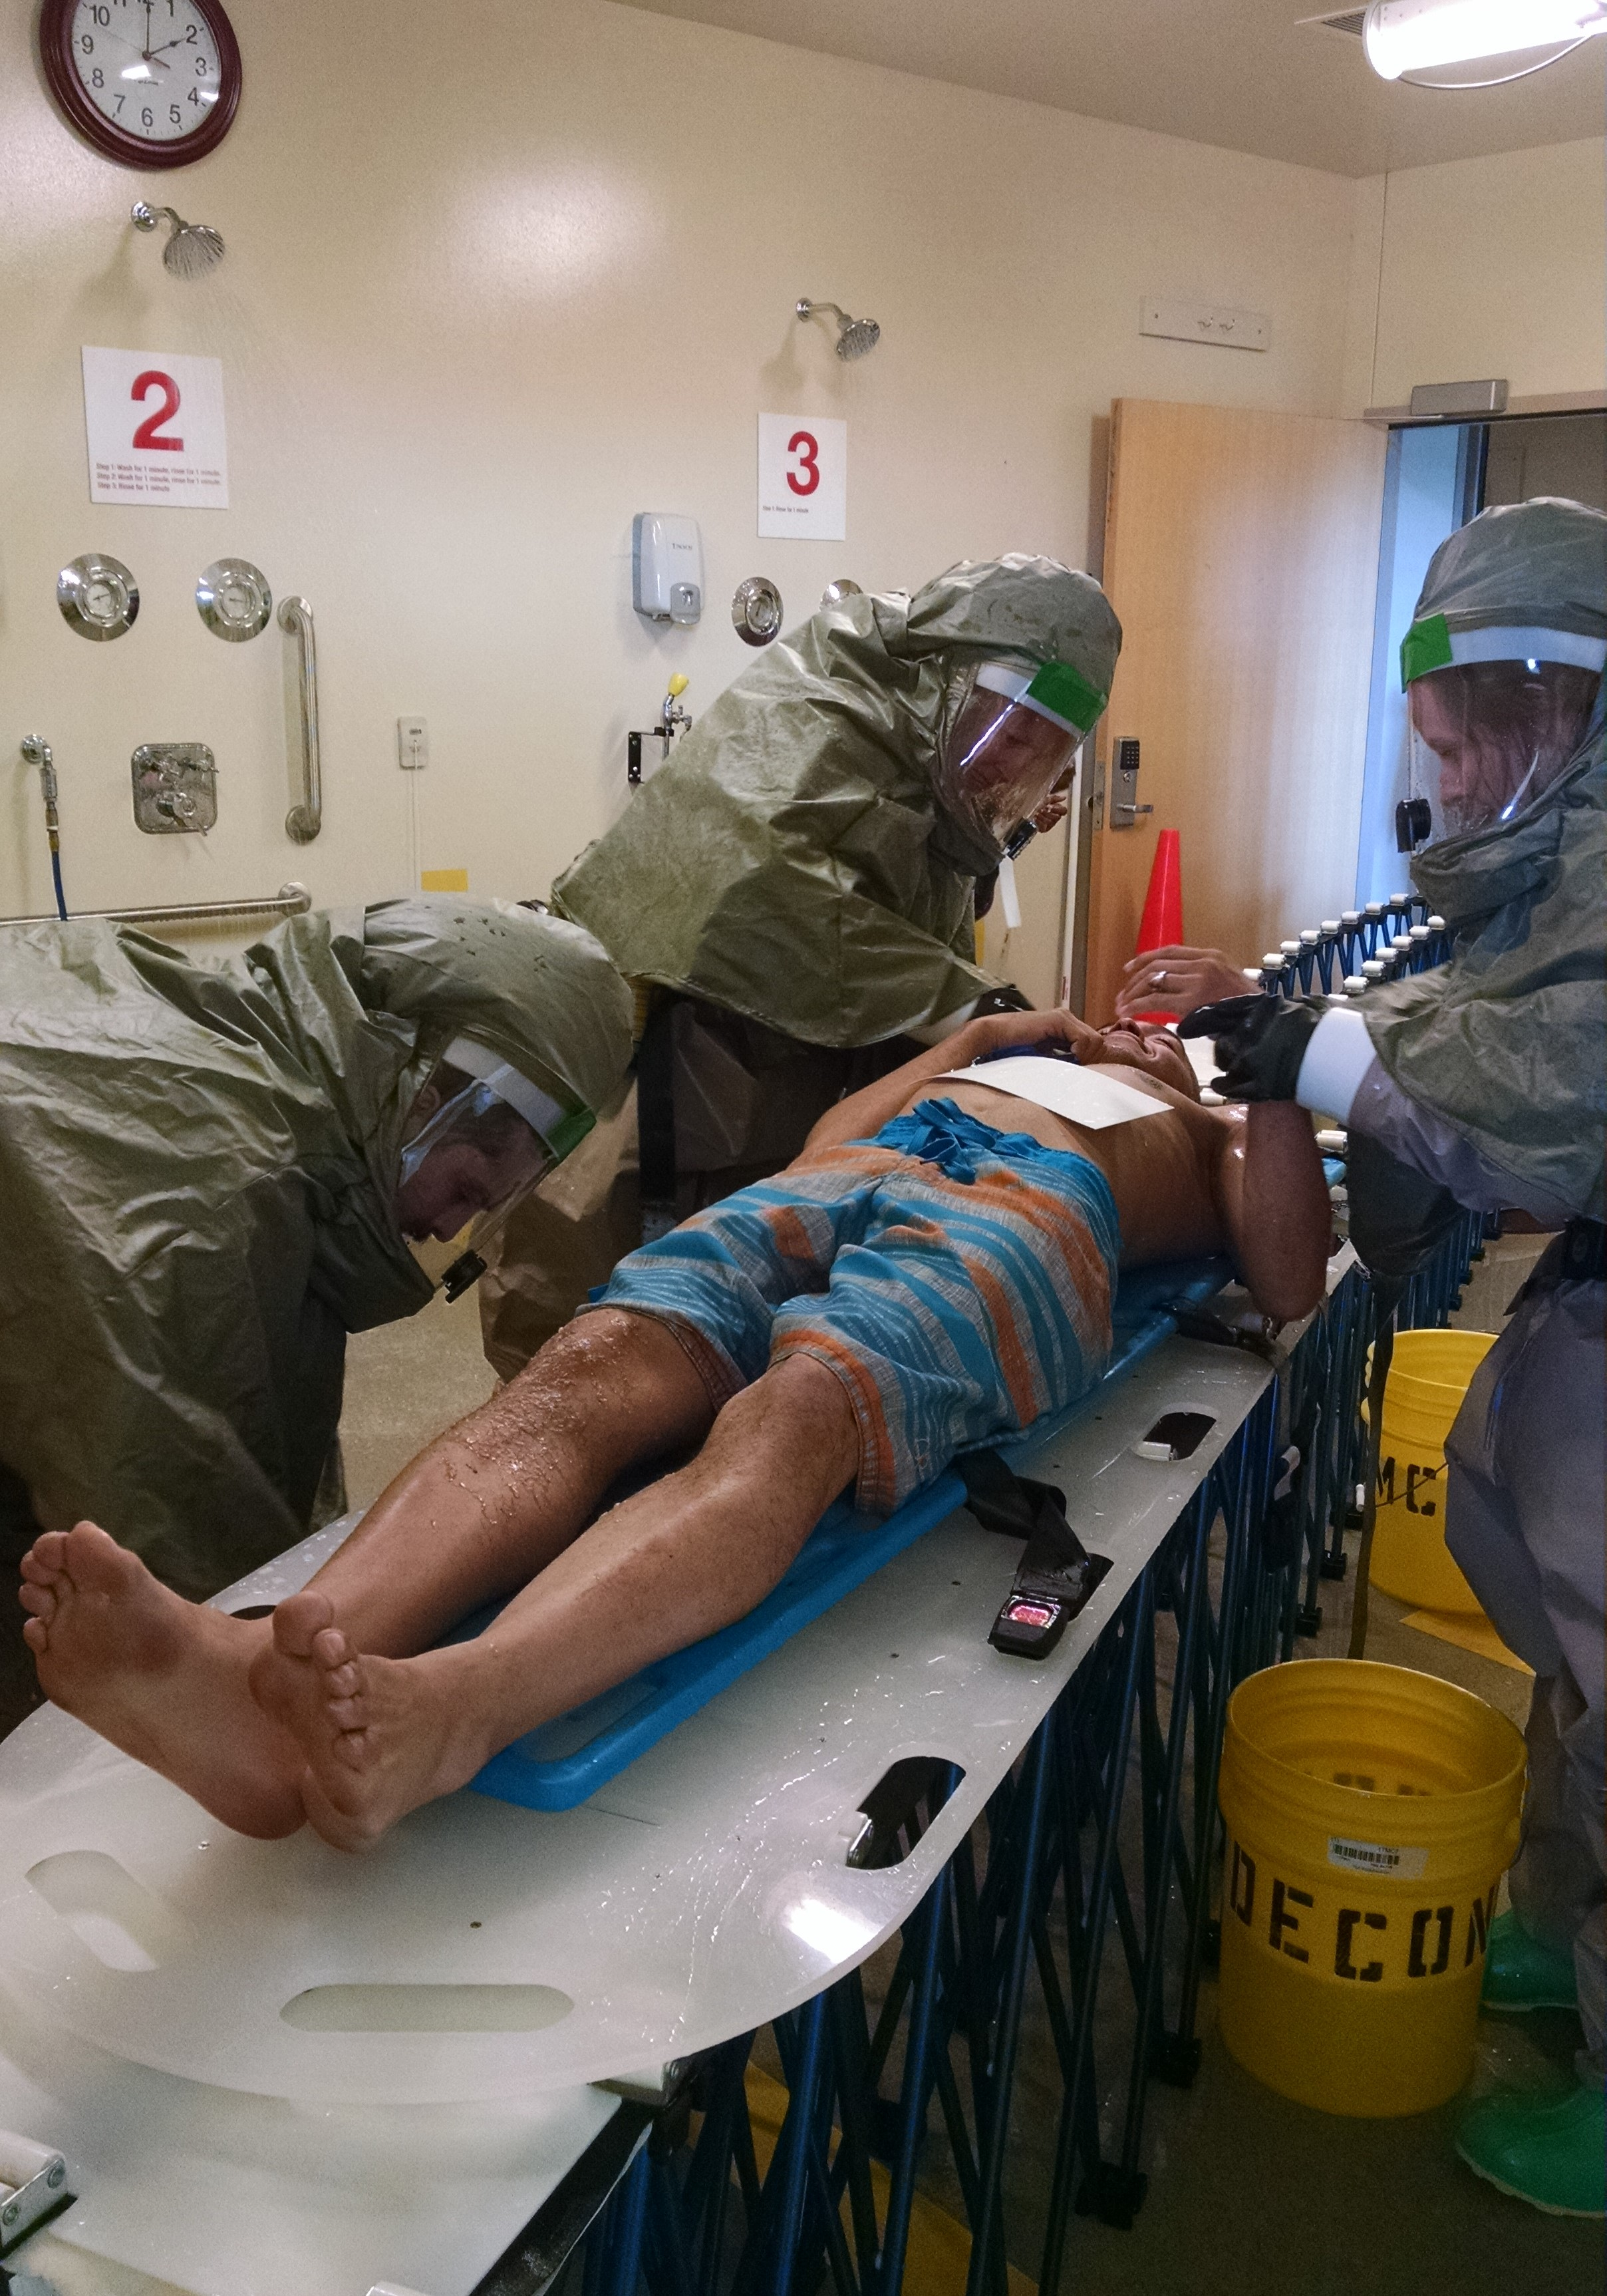 Hospital%20staff%20decontaminating%20a%20patient%20during%20a%20full-scale%20exericse